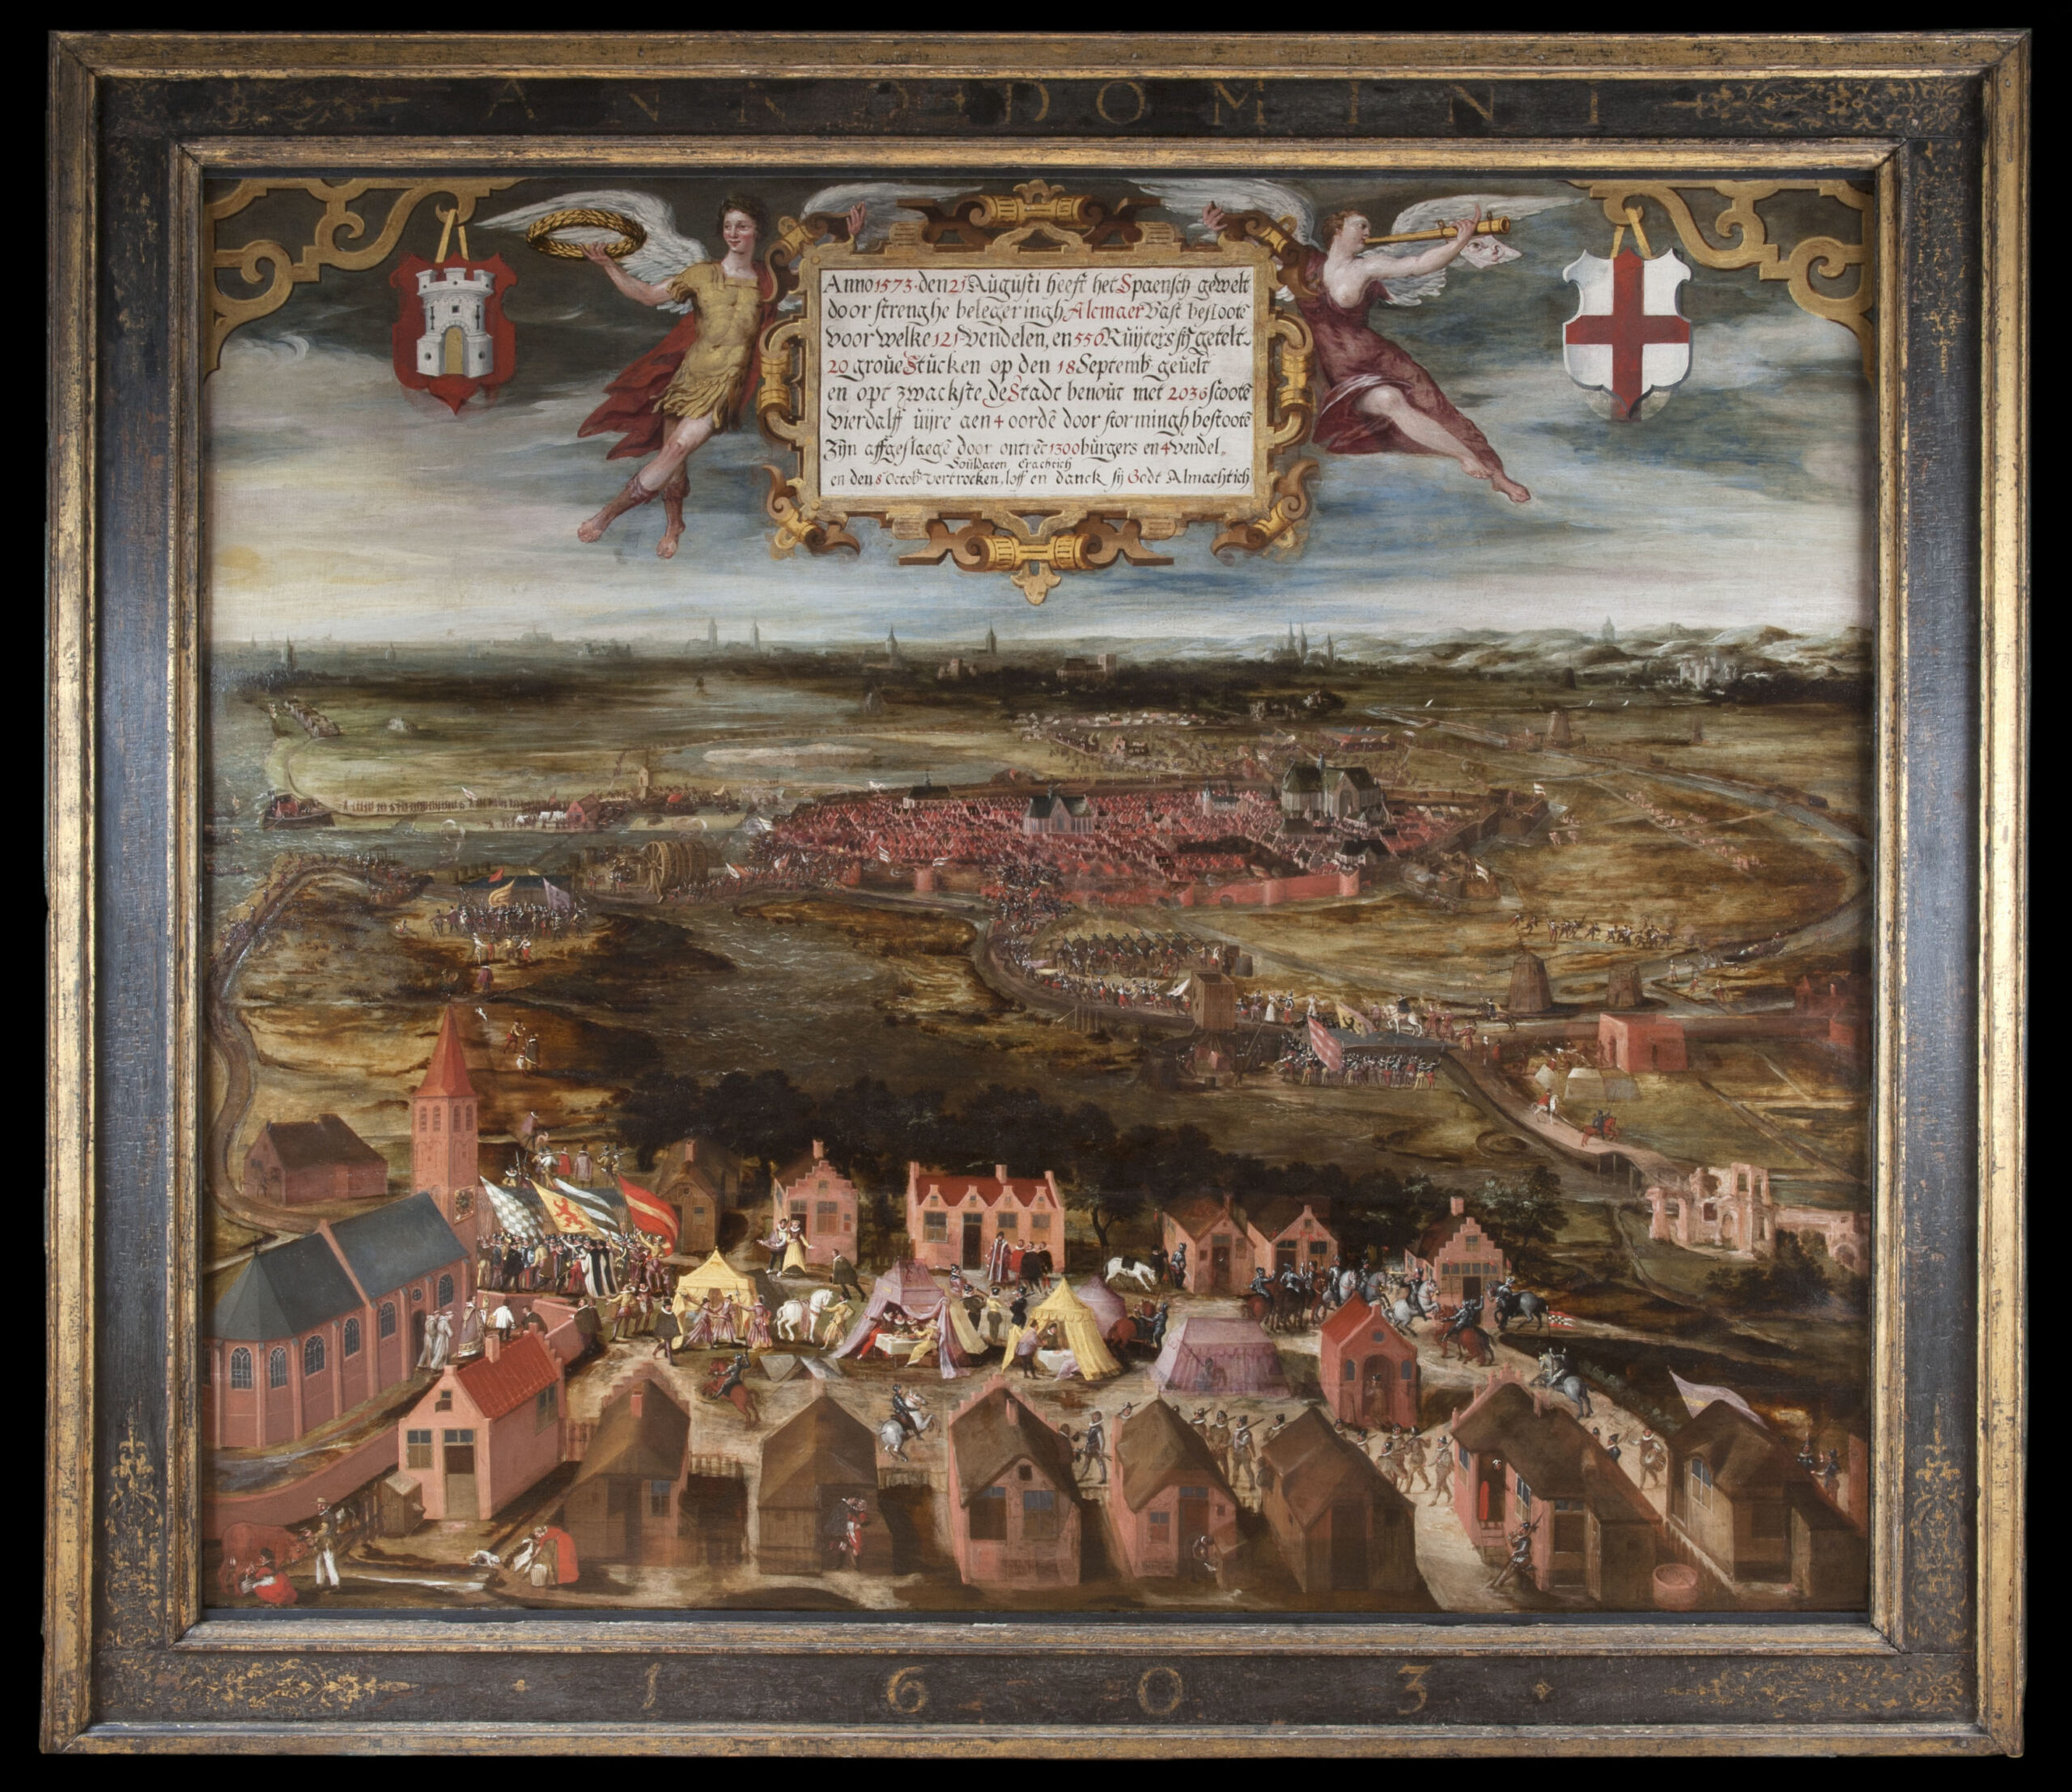 Fig.1. Unknown artist, <em>The Siege of Alkmaar in 1573 </em>, 1603, oil on panel, 160.3 x 187.3 cm<br>Restored with support from the Friends of the Stedelijk Museum Alkmaar Foundation.